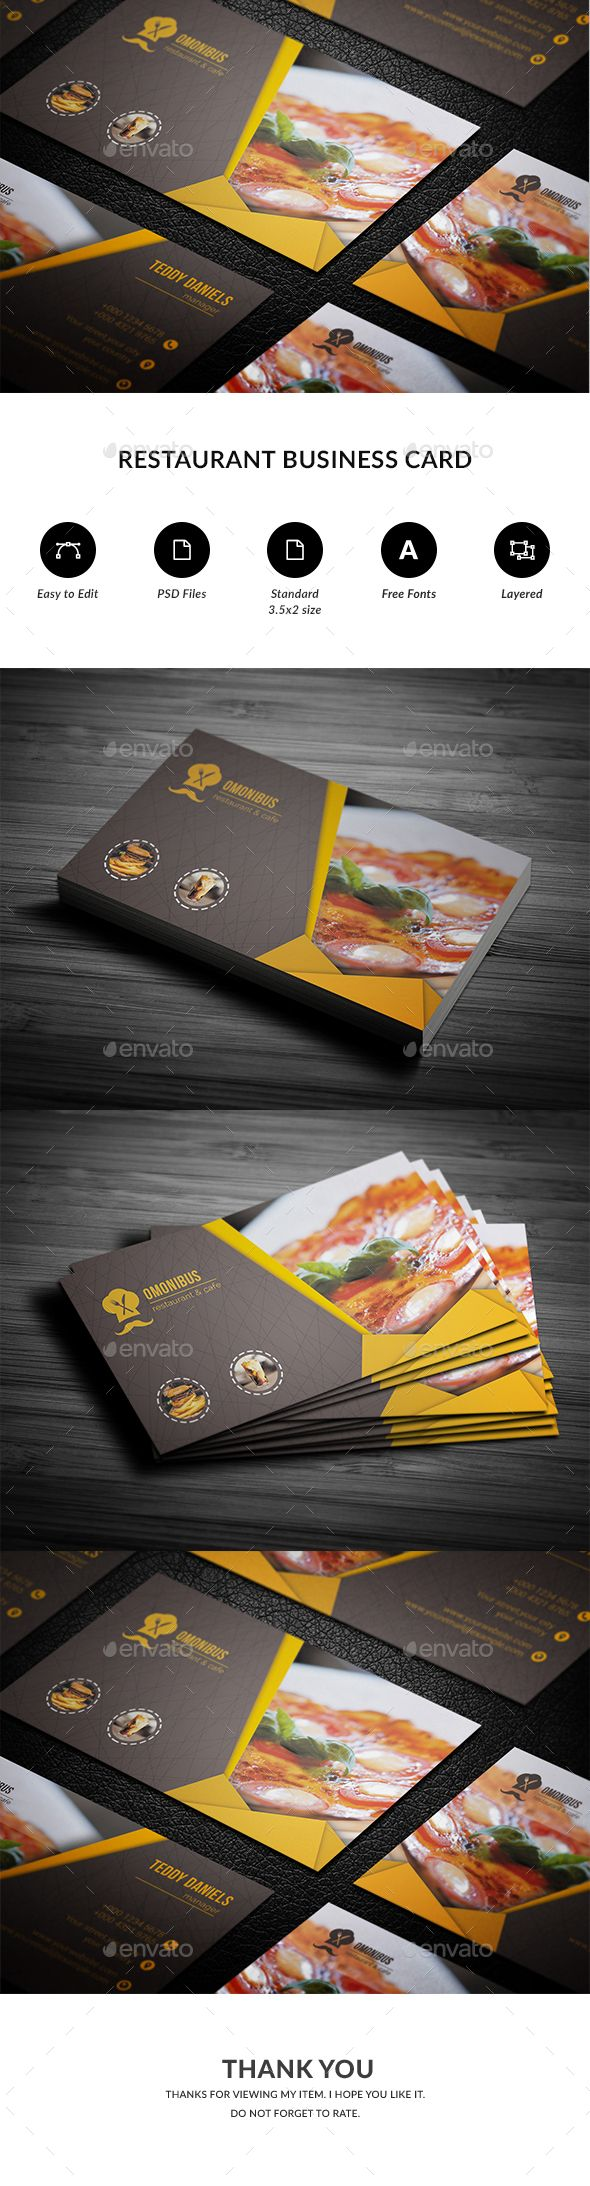 restaurant business card business cards card templates and business